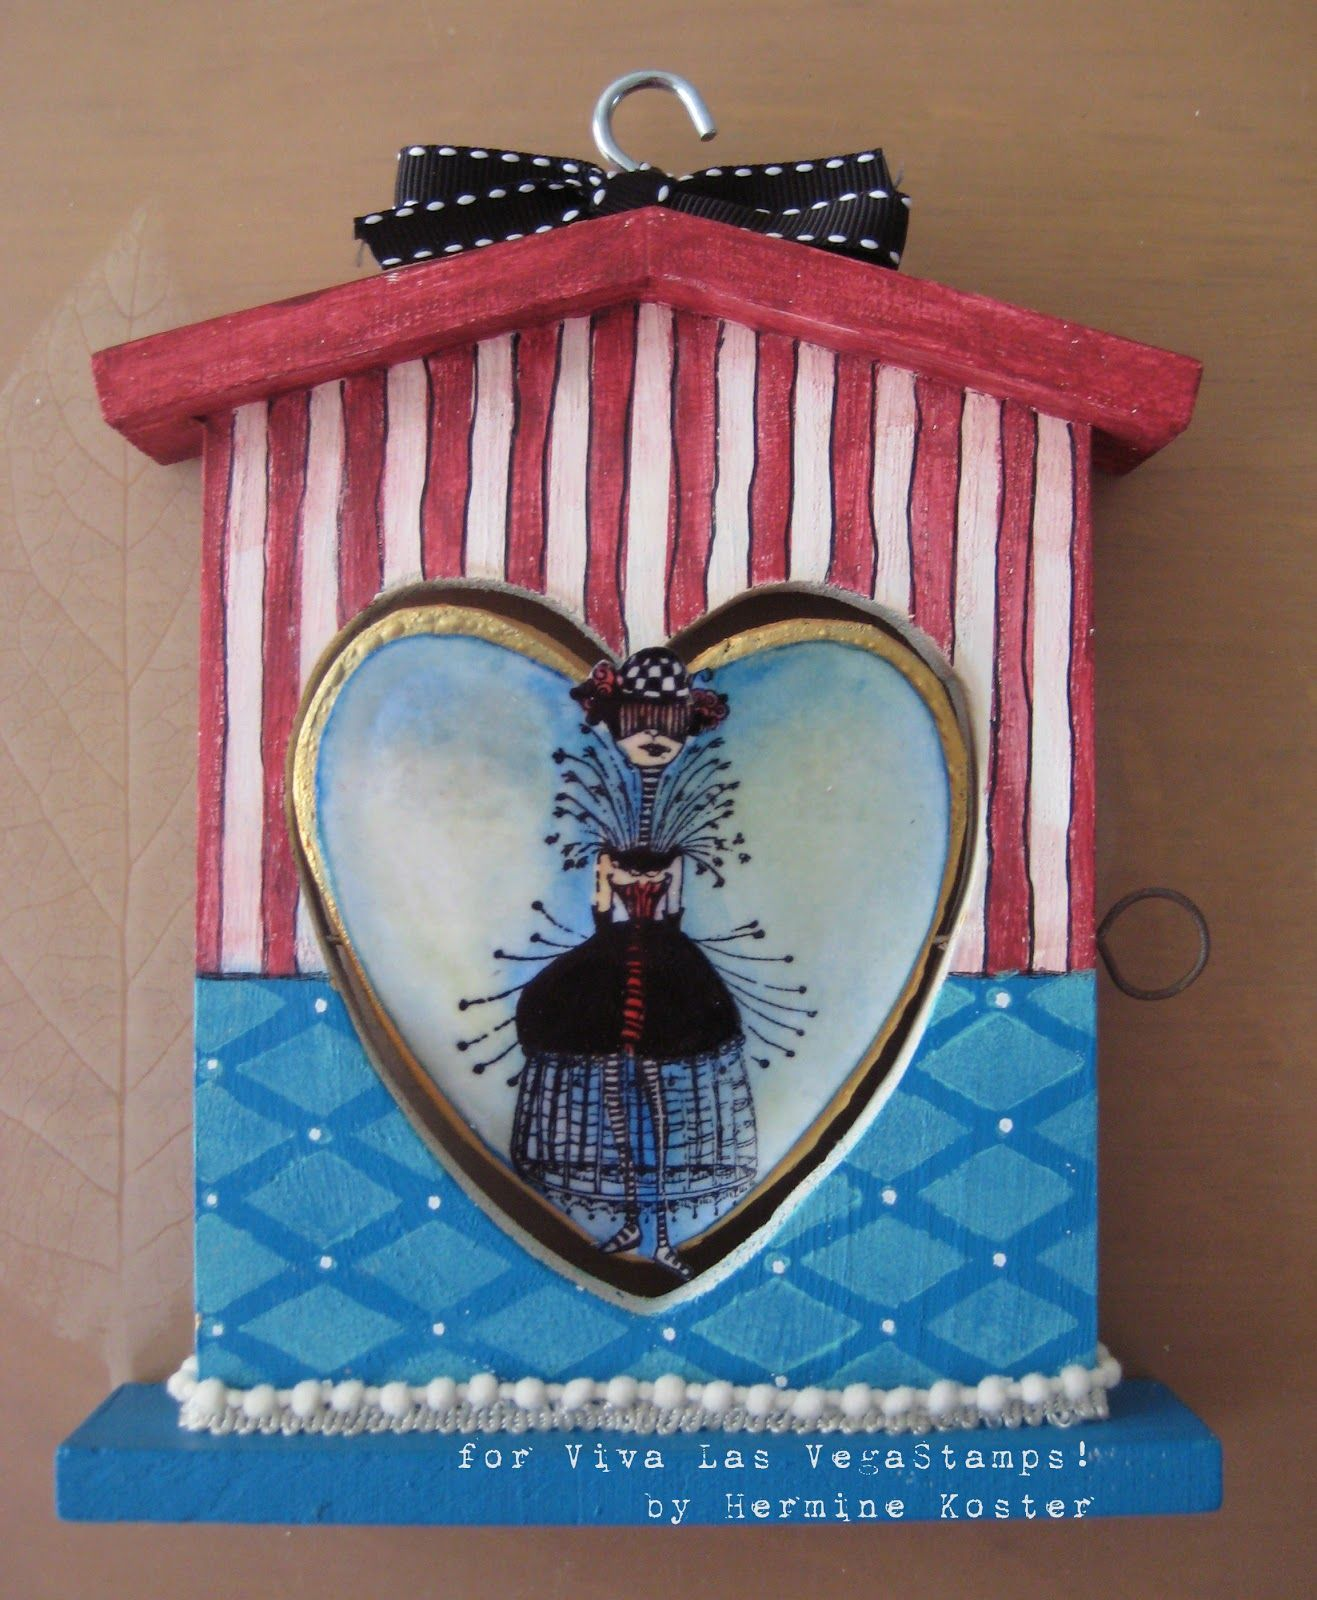 Viva Las Vegastamps!: circus themed bird house by Hermine Koster